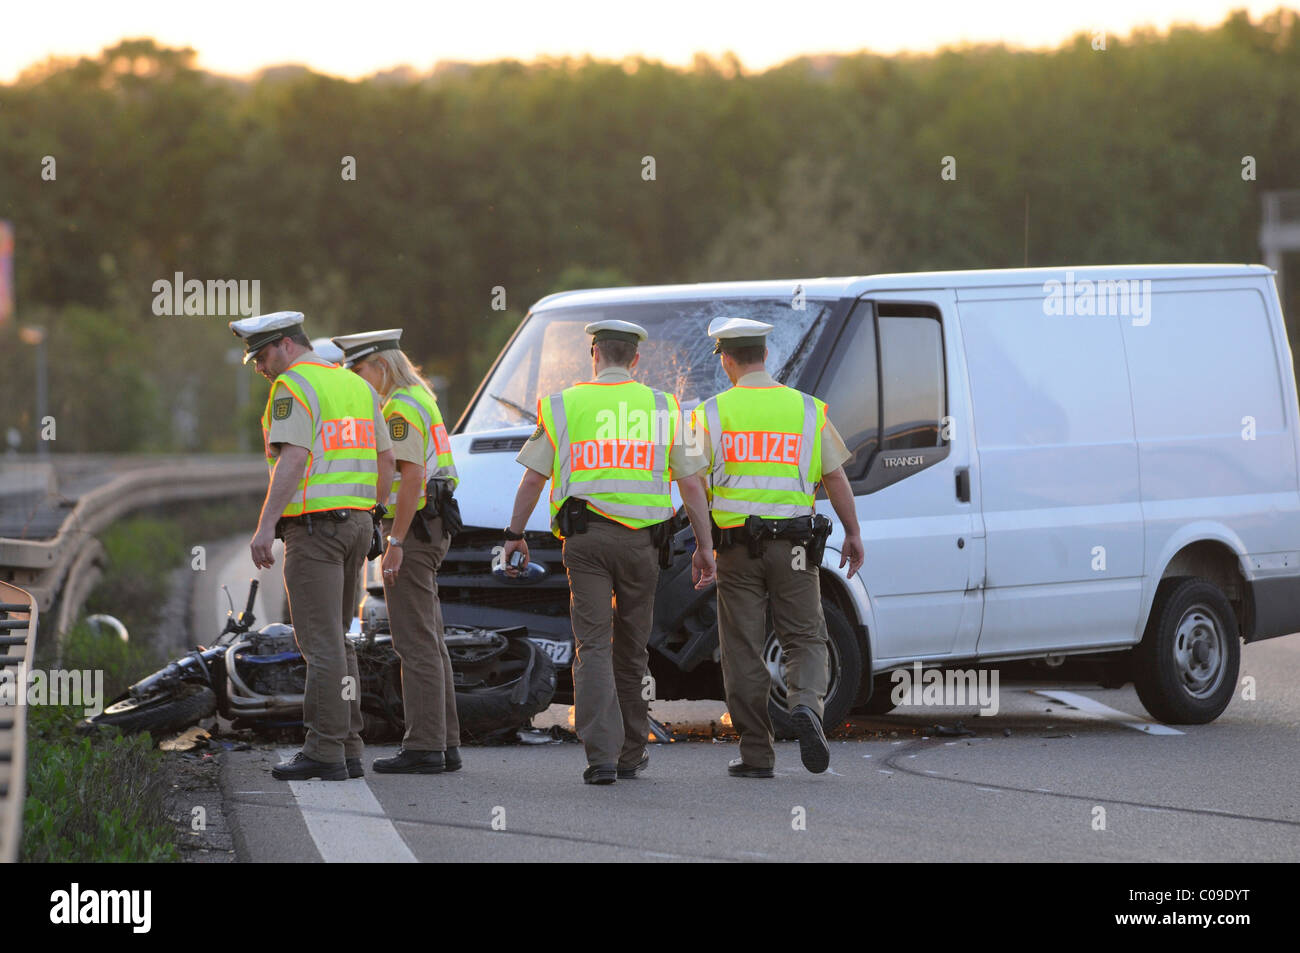 Fatal motorcycle accident on road B 27, police securing evidence